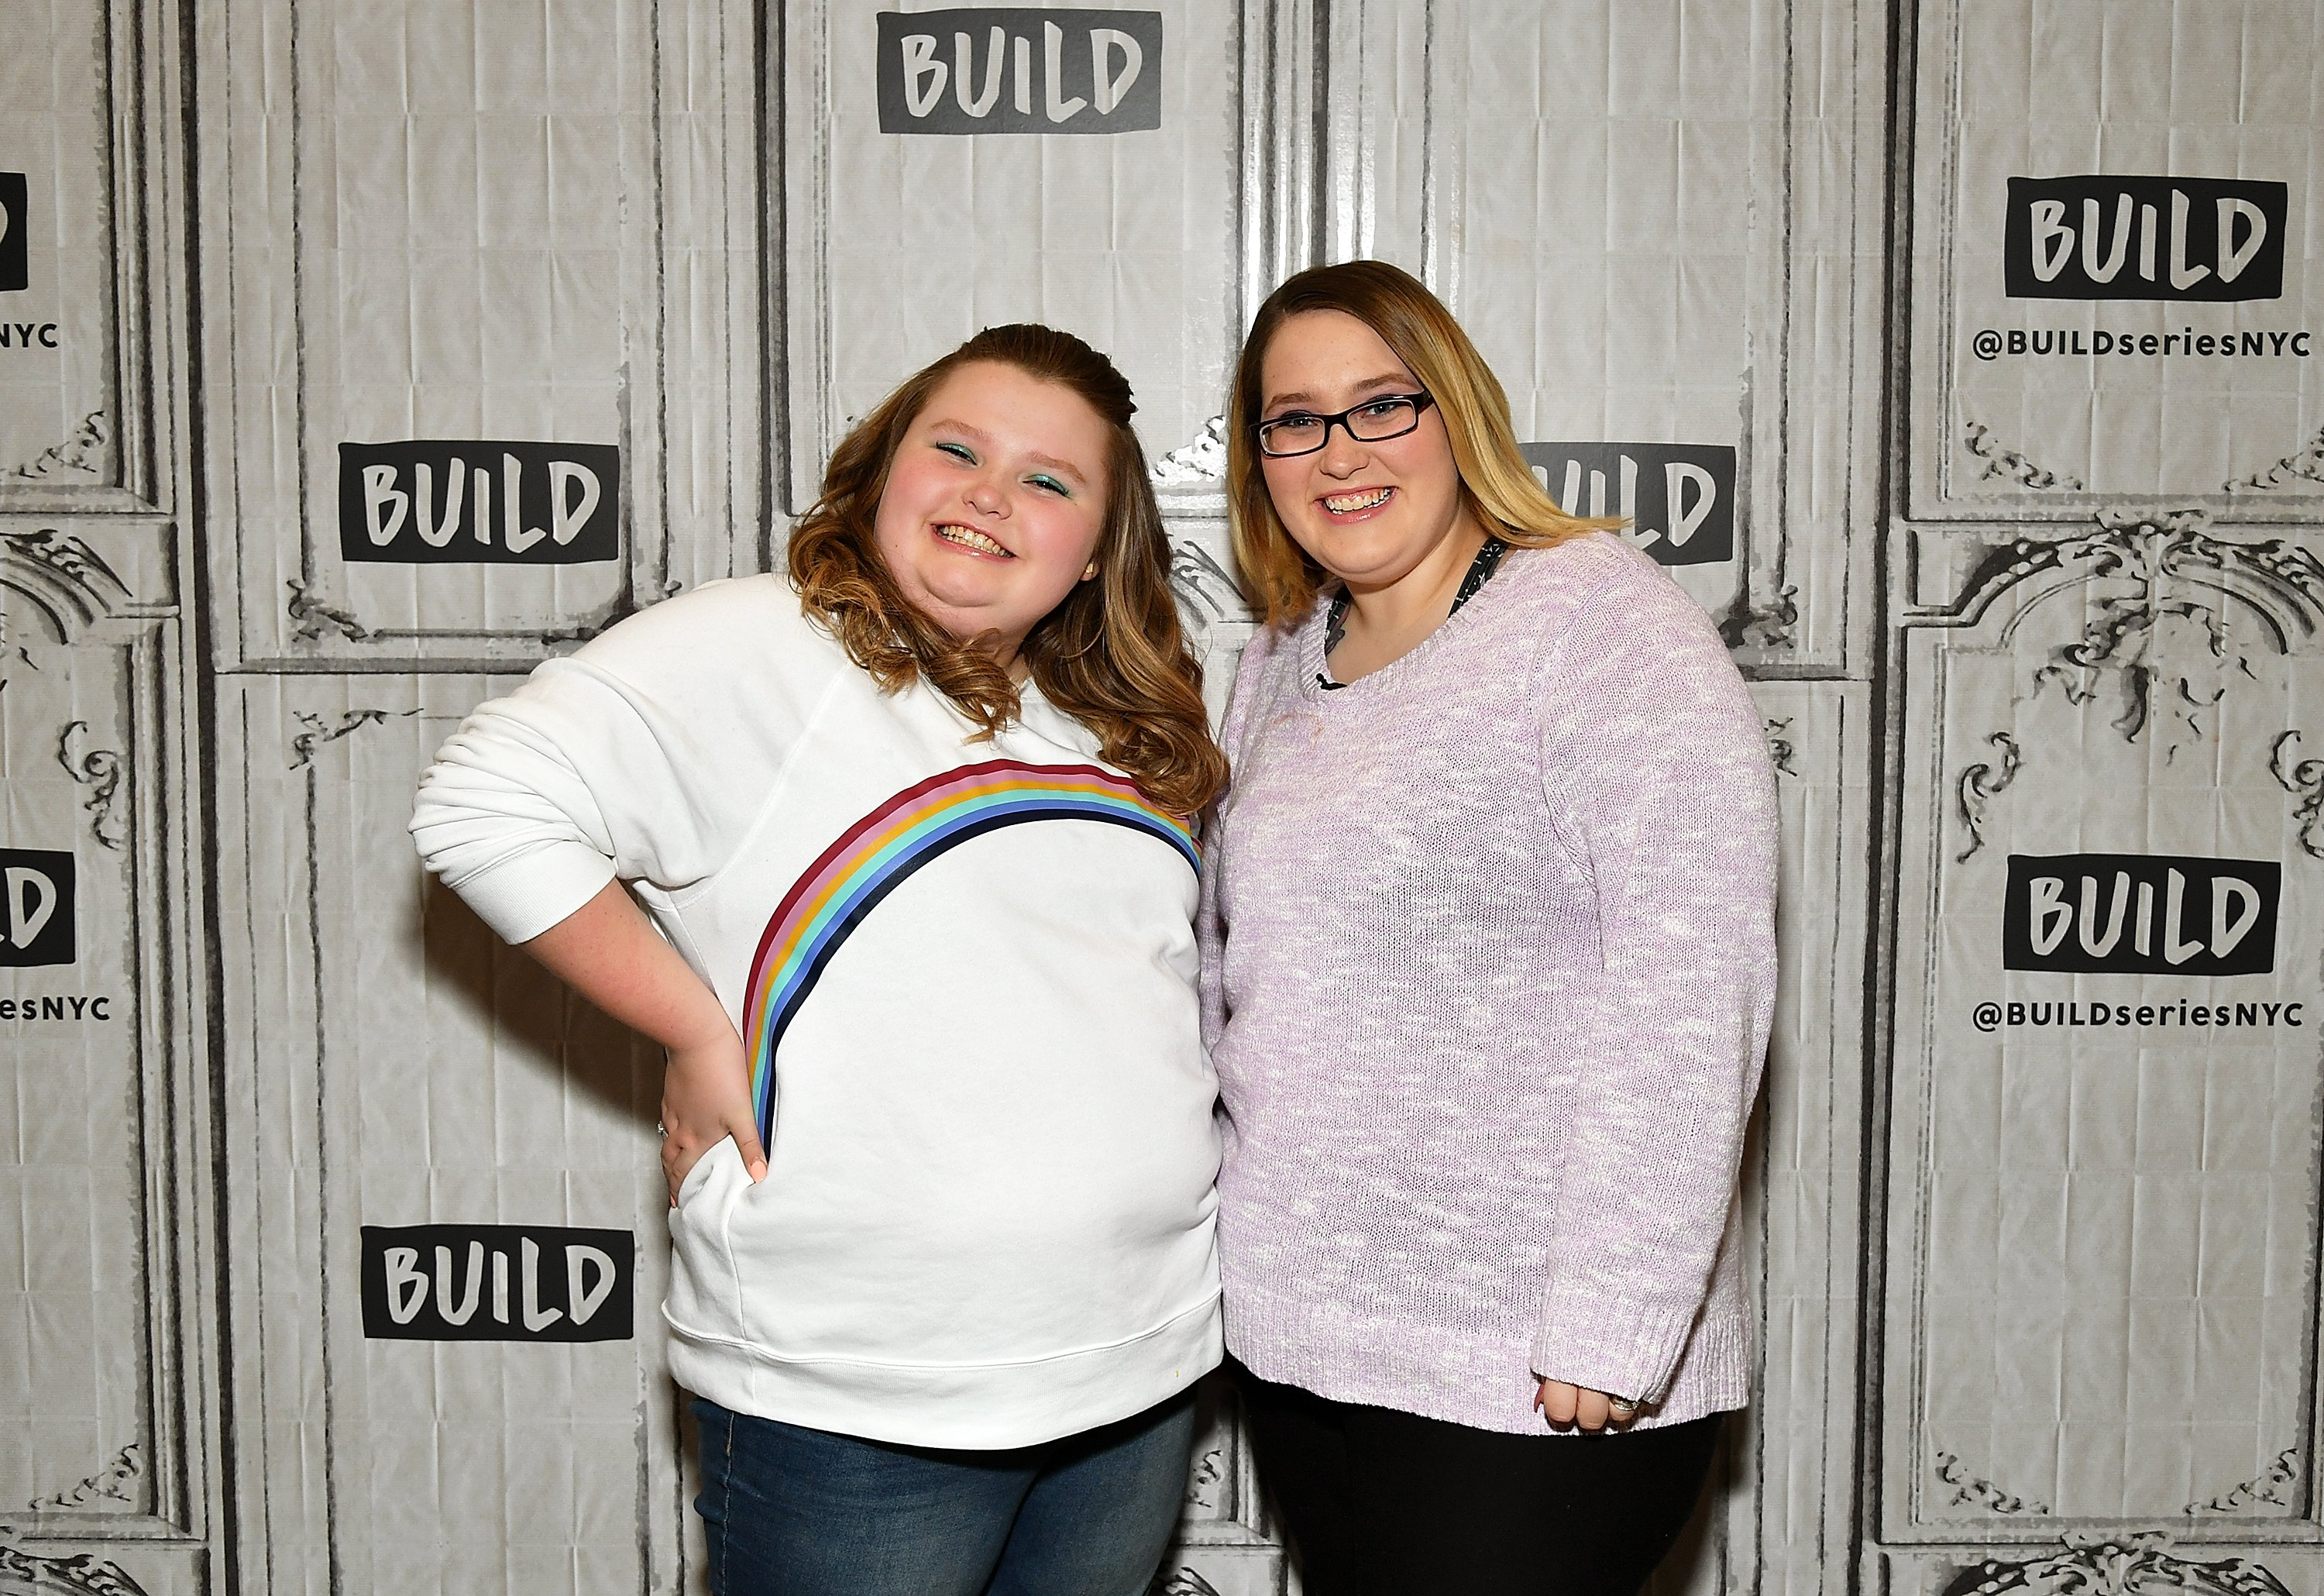 """Alana """"Honey Boo Boo"""" Thompson (L) and Lauryn """"Pumpkin"""" Shannon from TLC's reality TV series """"Here Comes Honey Boo Boo"""" attend Build Brunch at Build Studio on March 14, 2019 in New York City.   Source: Getty Images"""